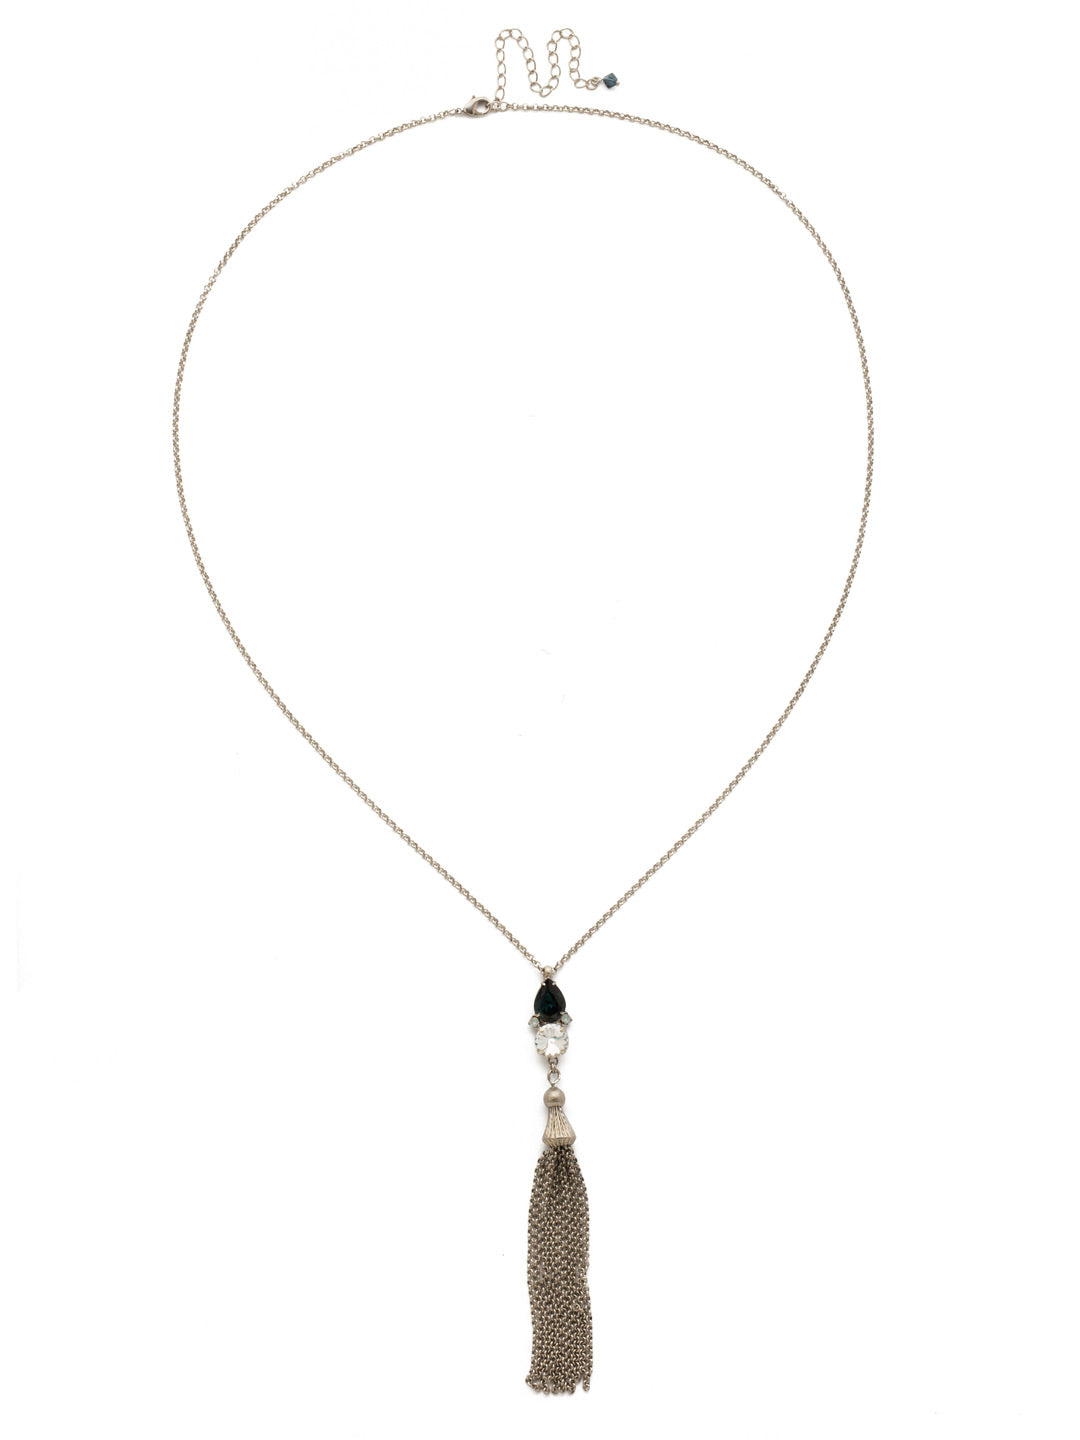 Timeless Tassel Necklace - NDN51ASGBL